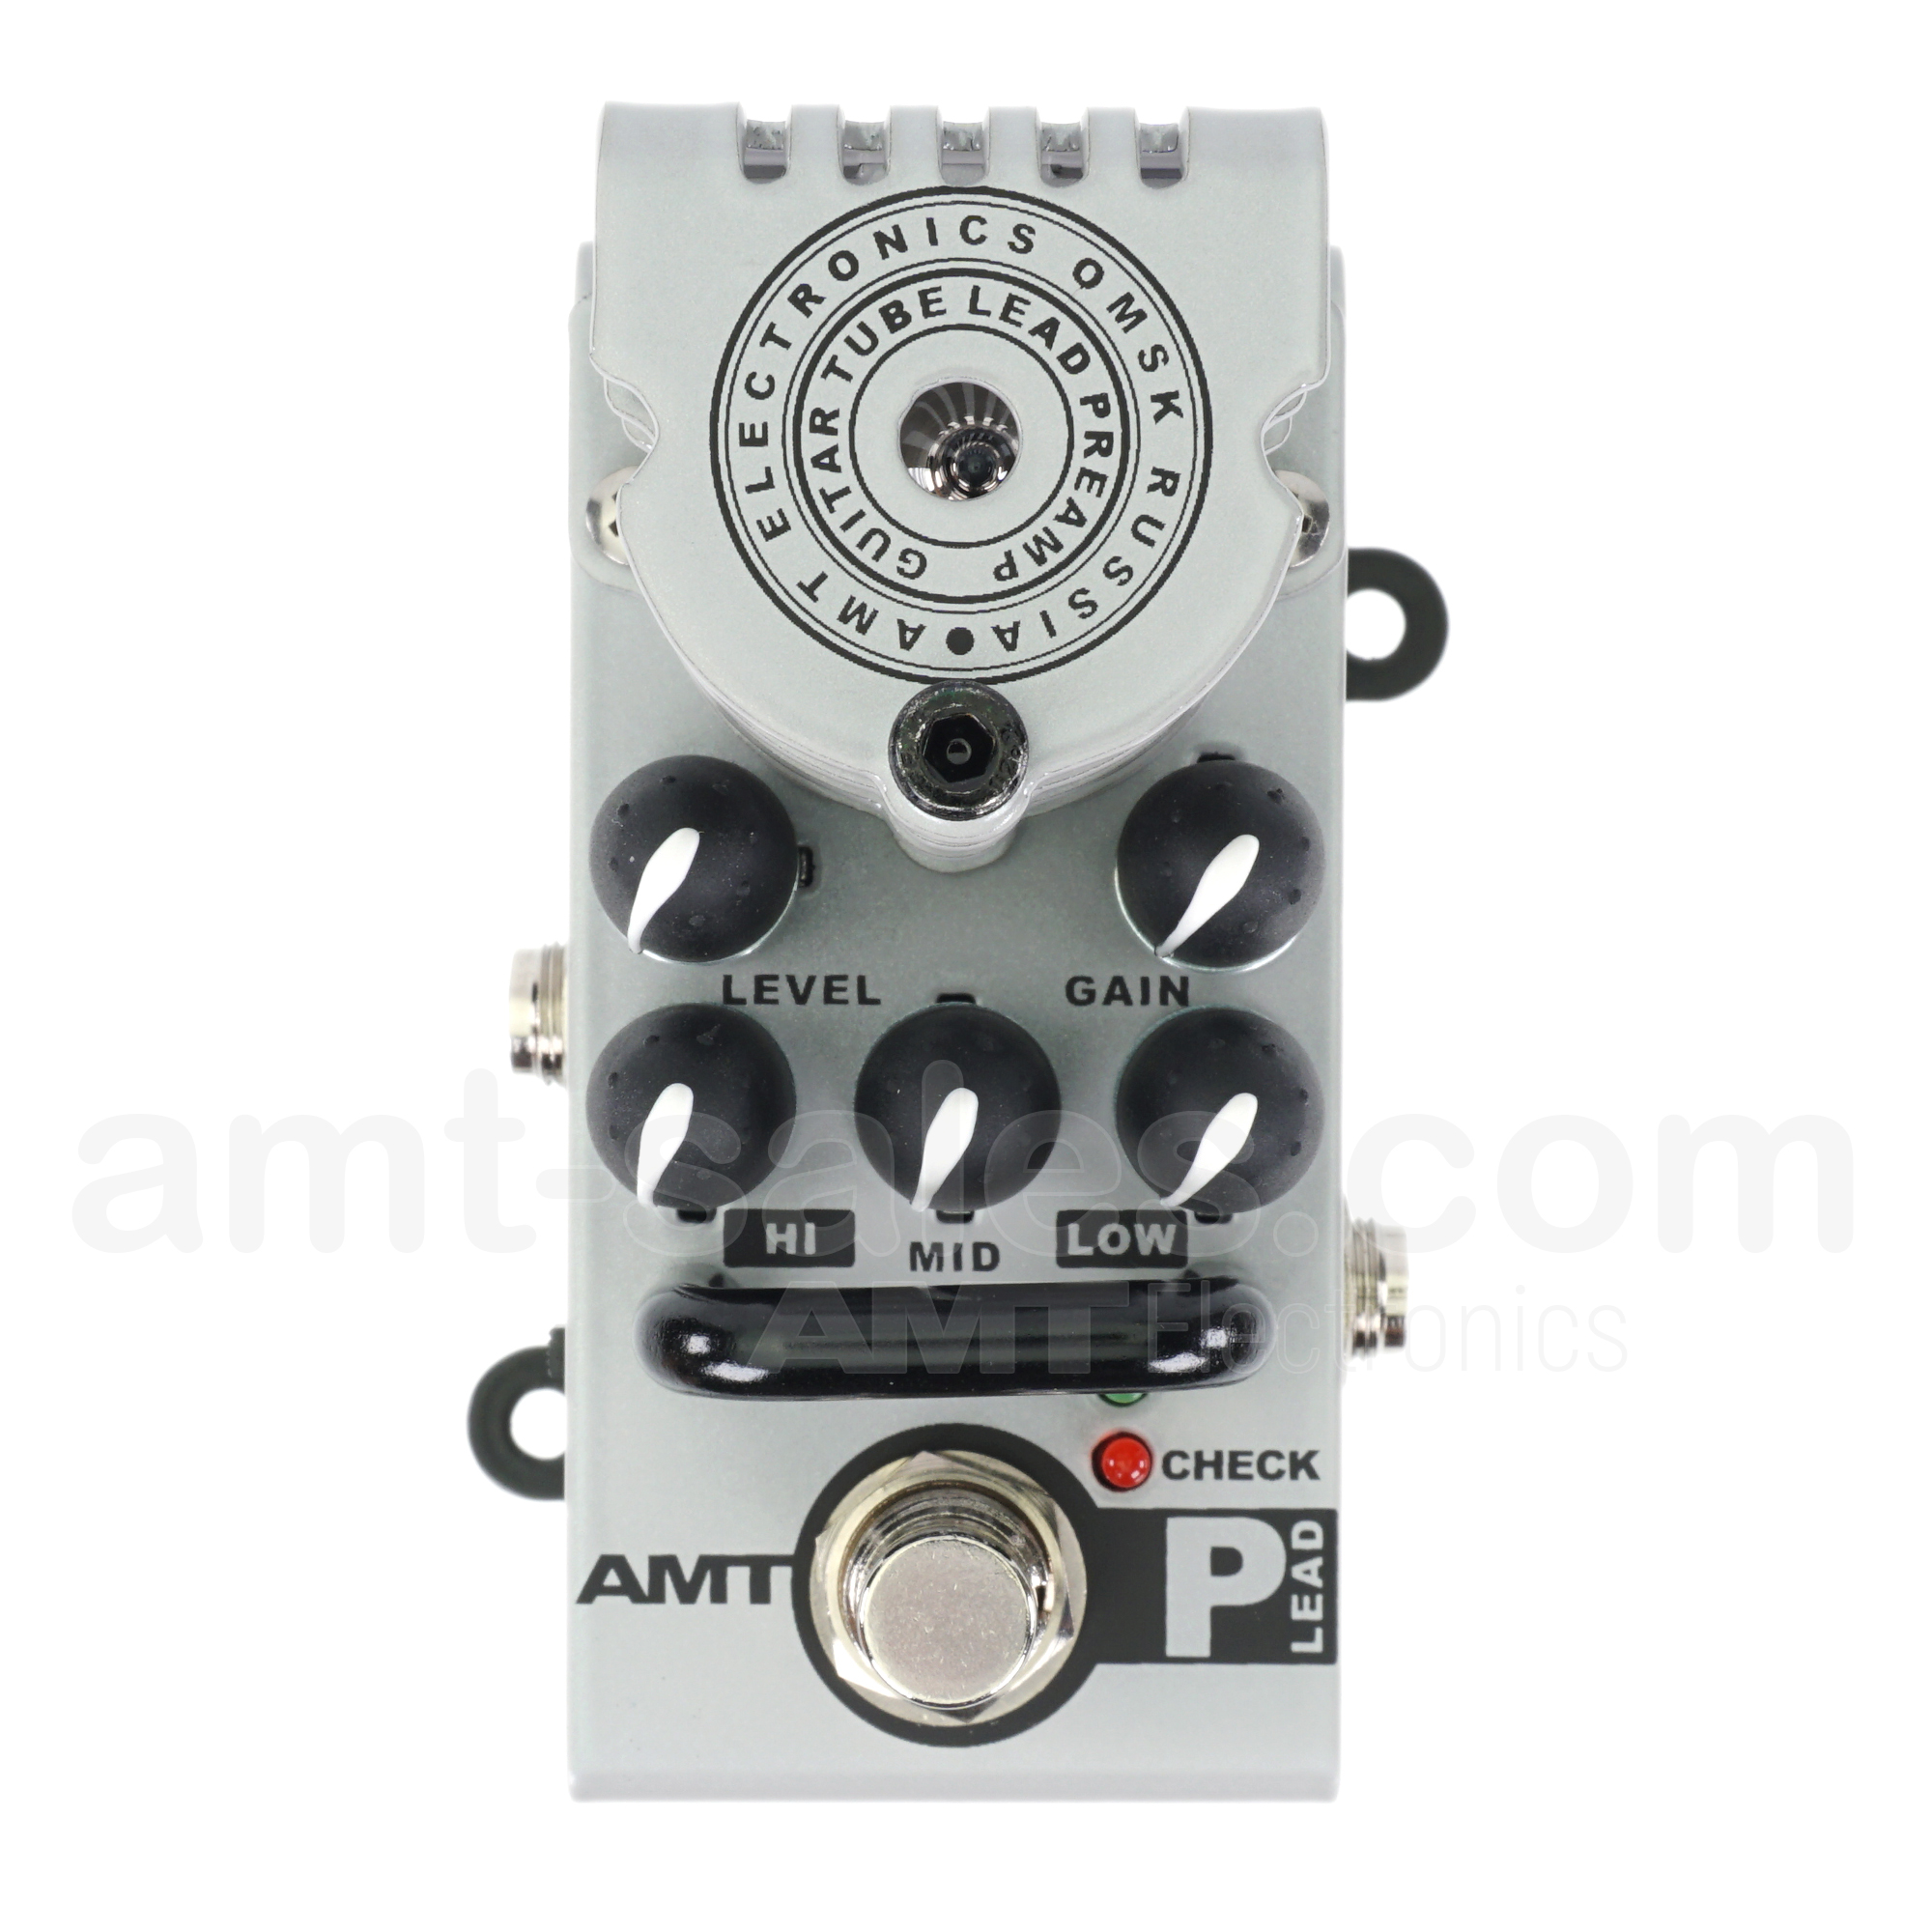 AMT Bricks P-Lead - 1 channel tube guitar preamp (Peavey 5150/6505  Emulates)